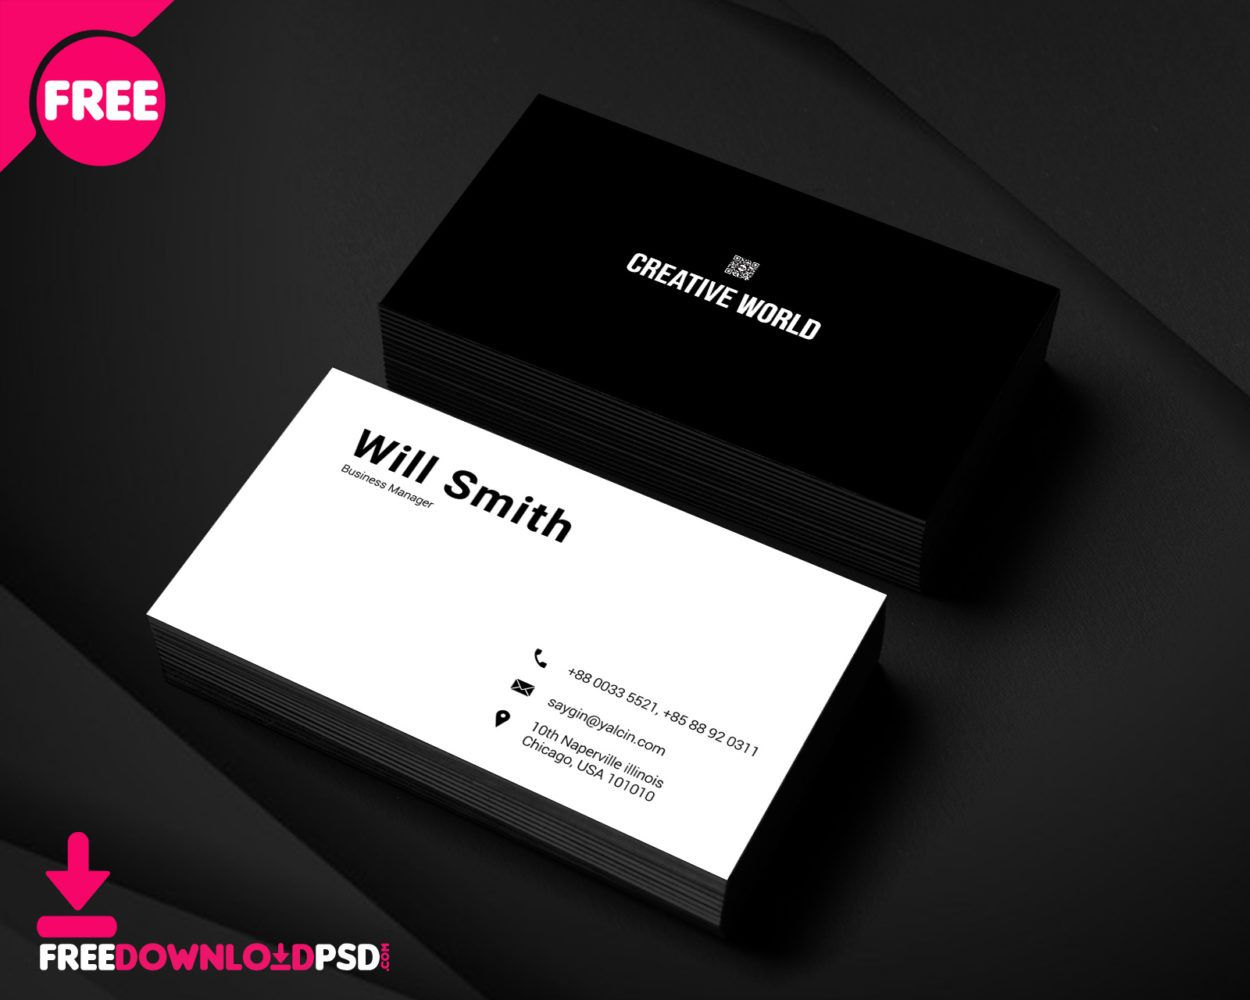 009 Imposing Minimalist Busines Card Template Psd Free Example Full